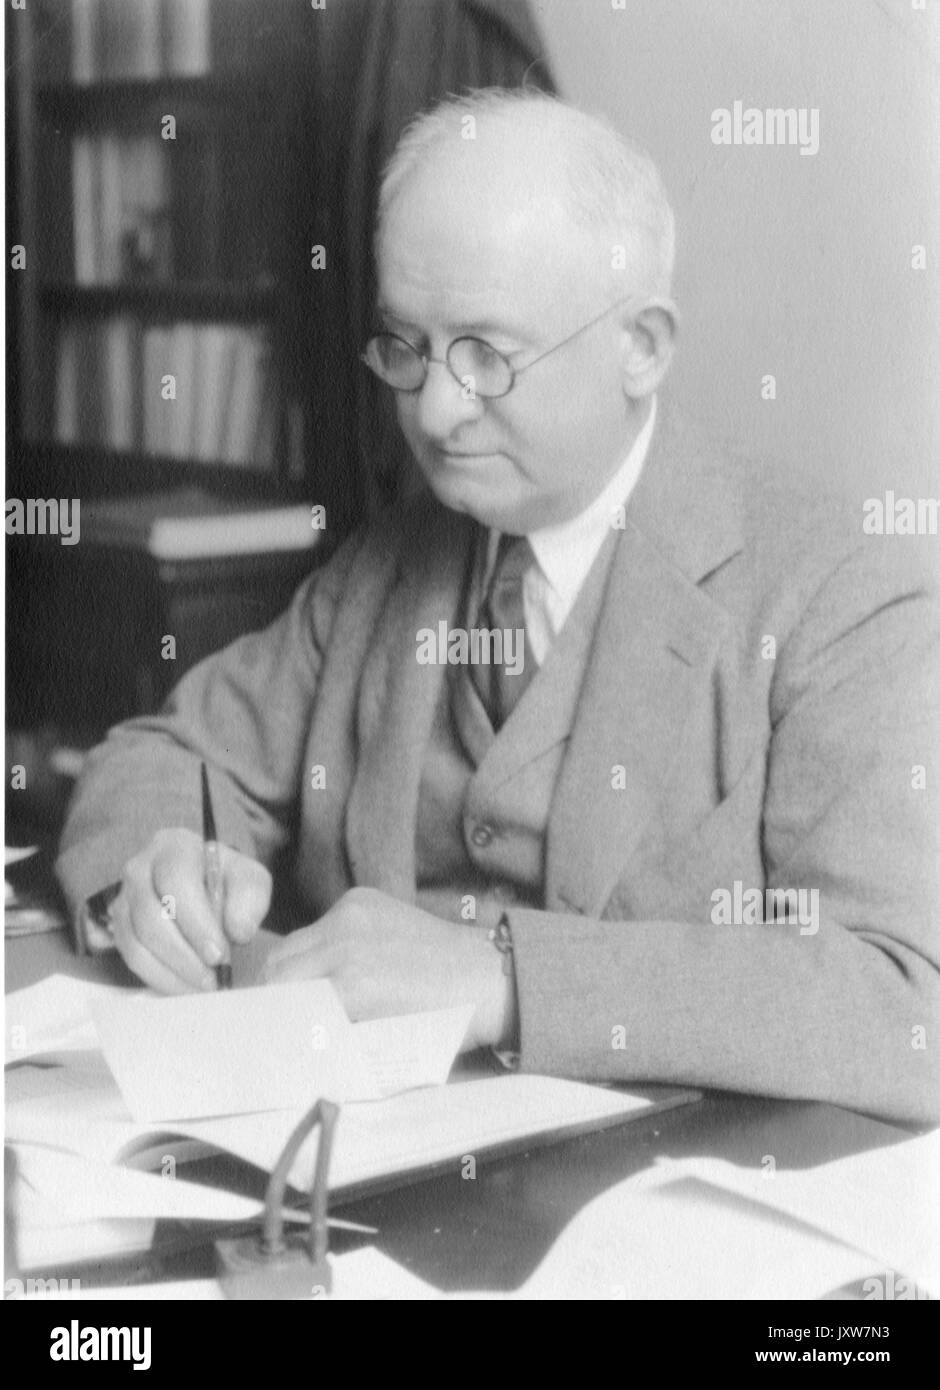 Joseph Sweetman Ames, Portrait photograph, Sitting at desk with pen in hand, Waist up, Three-quarter view, 1930. - Stock Image